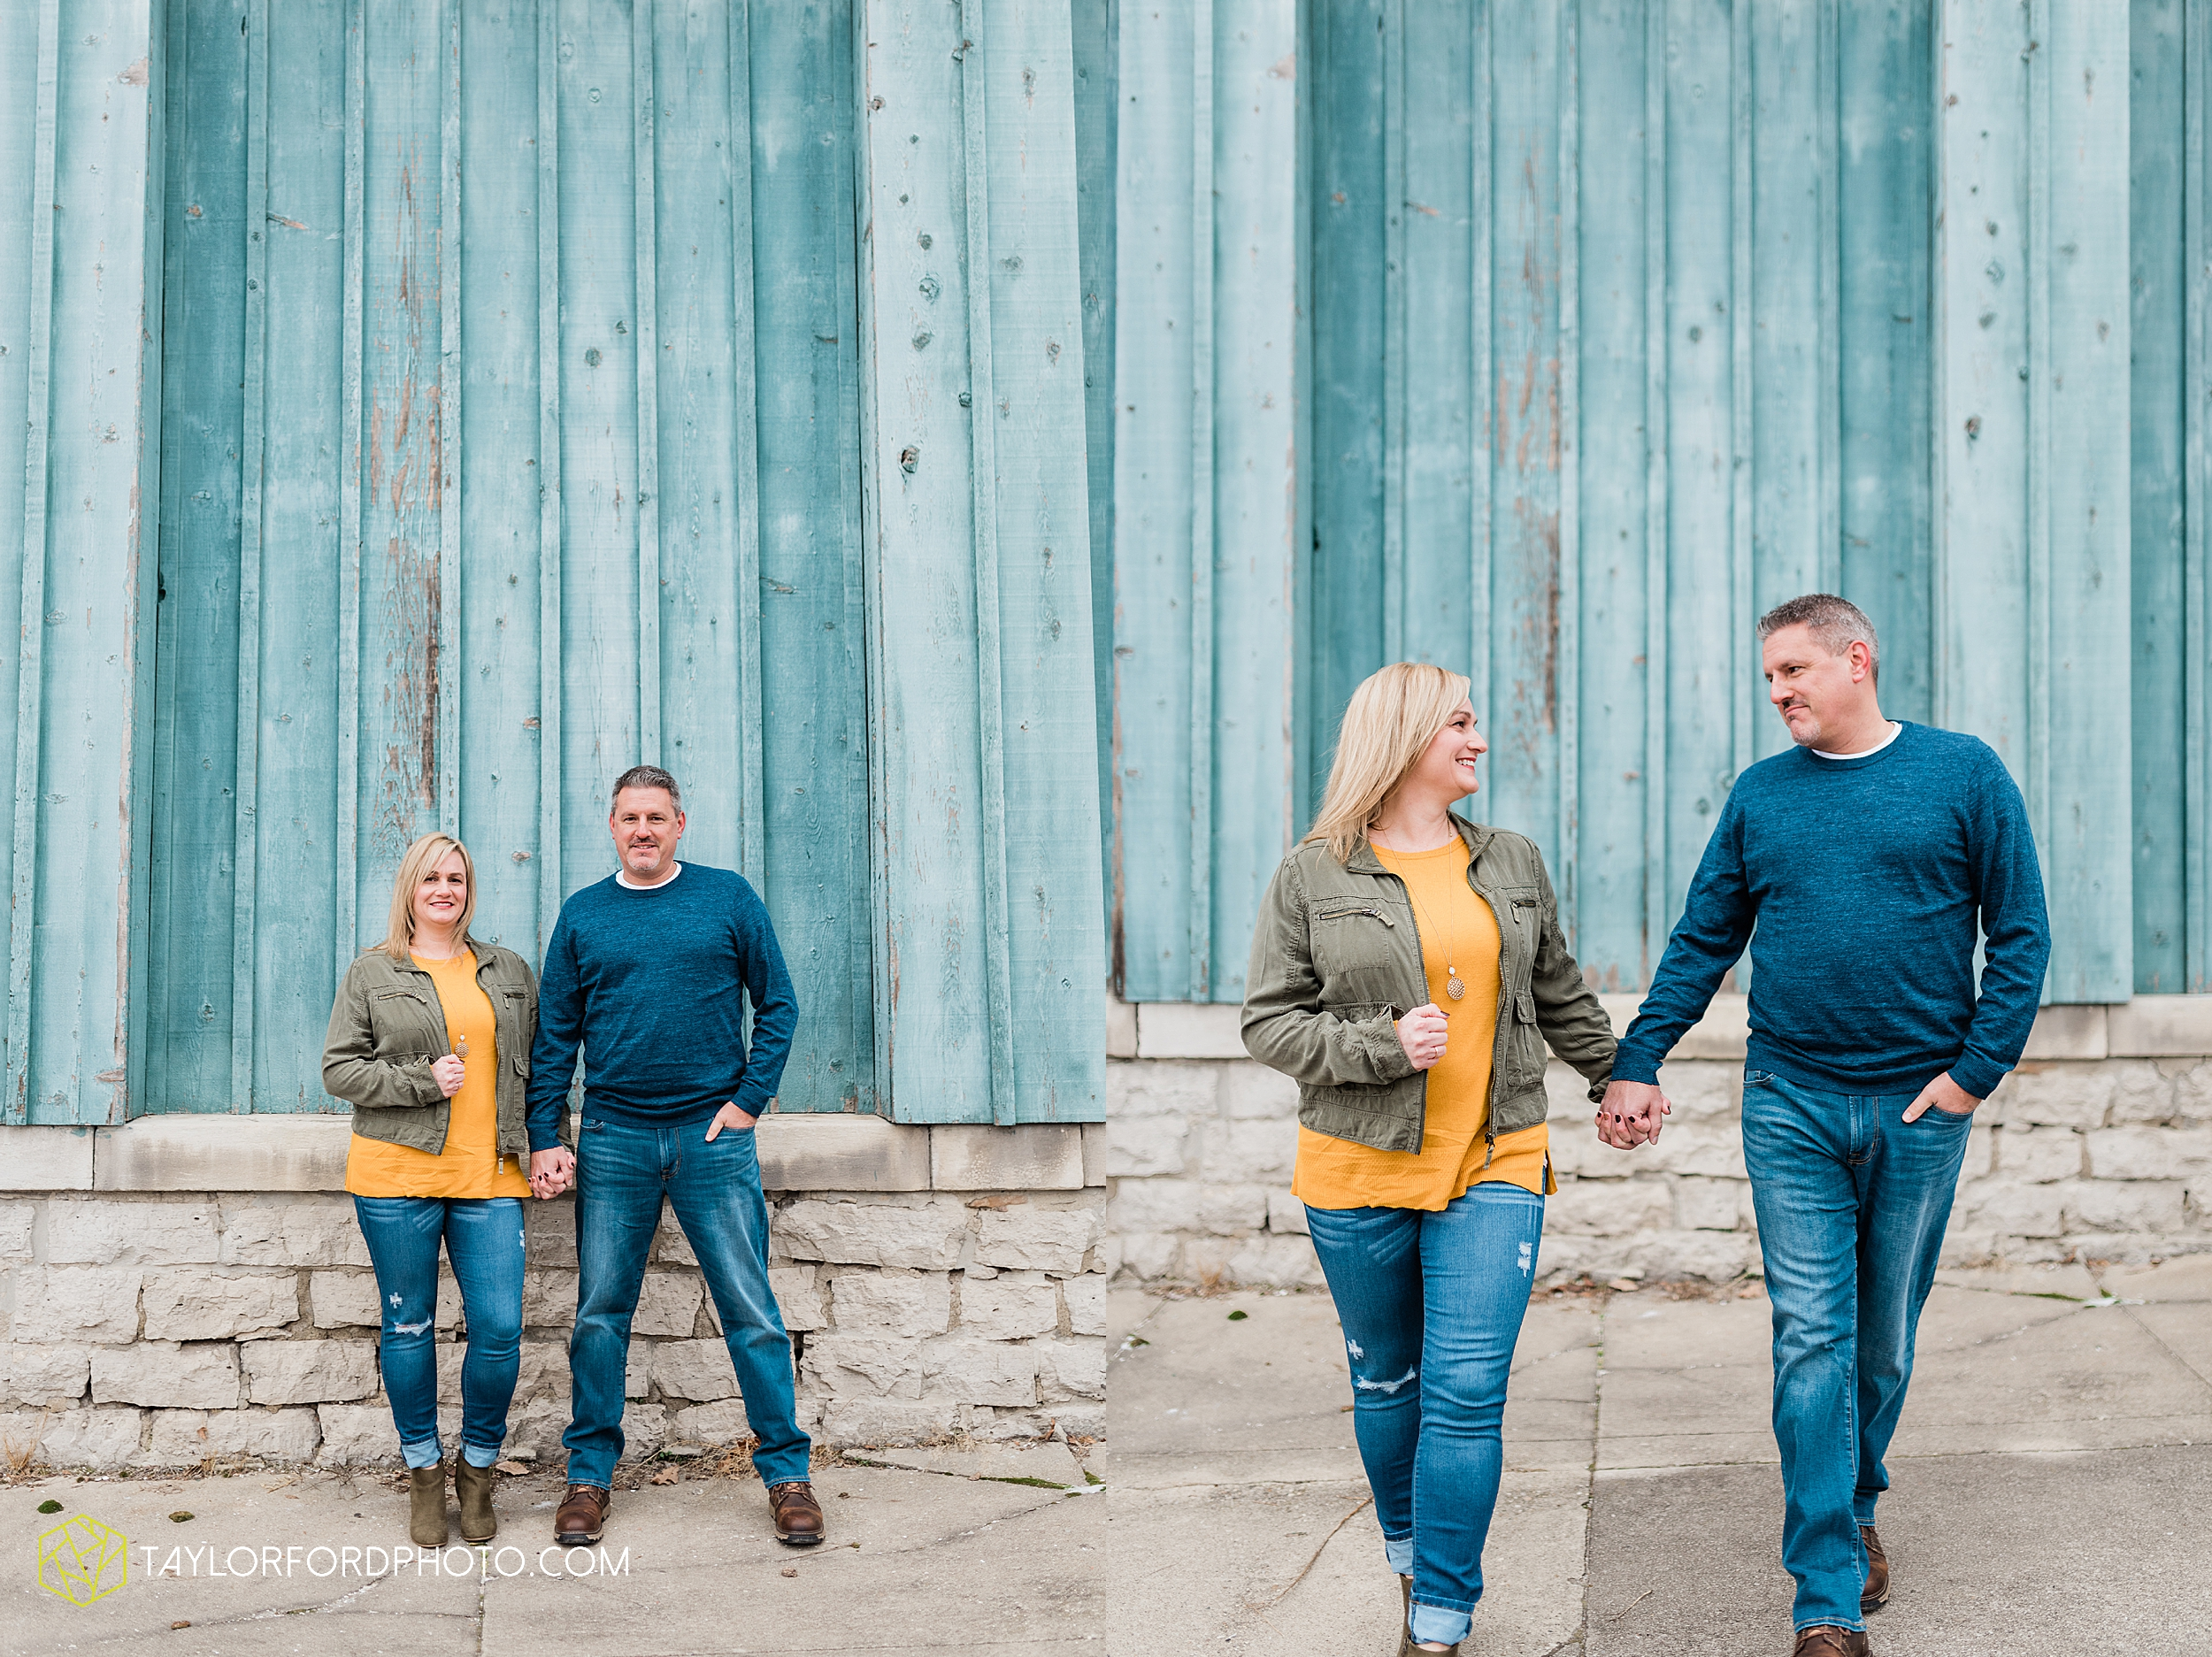 thompson-extended-family-van-wert-ohio-downtown-family-photography-taylor-ford-hirschy-photographer_2082.jpg